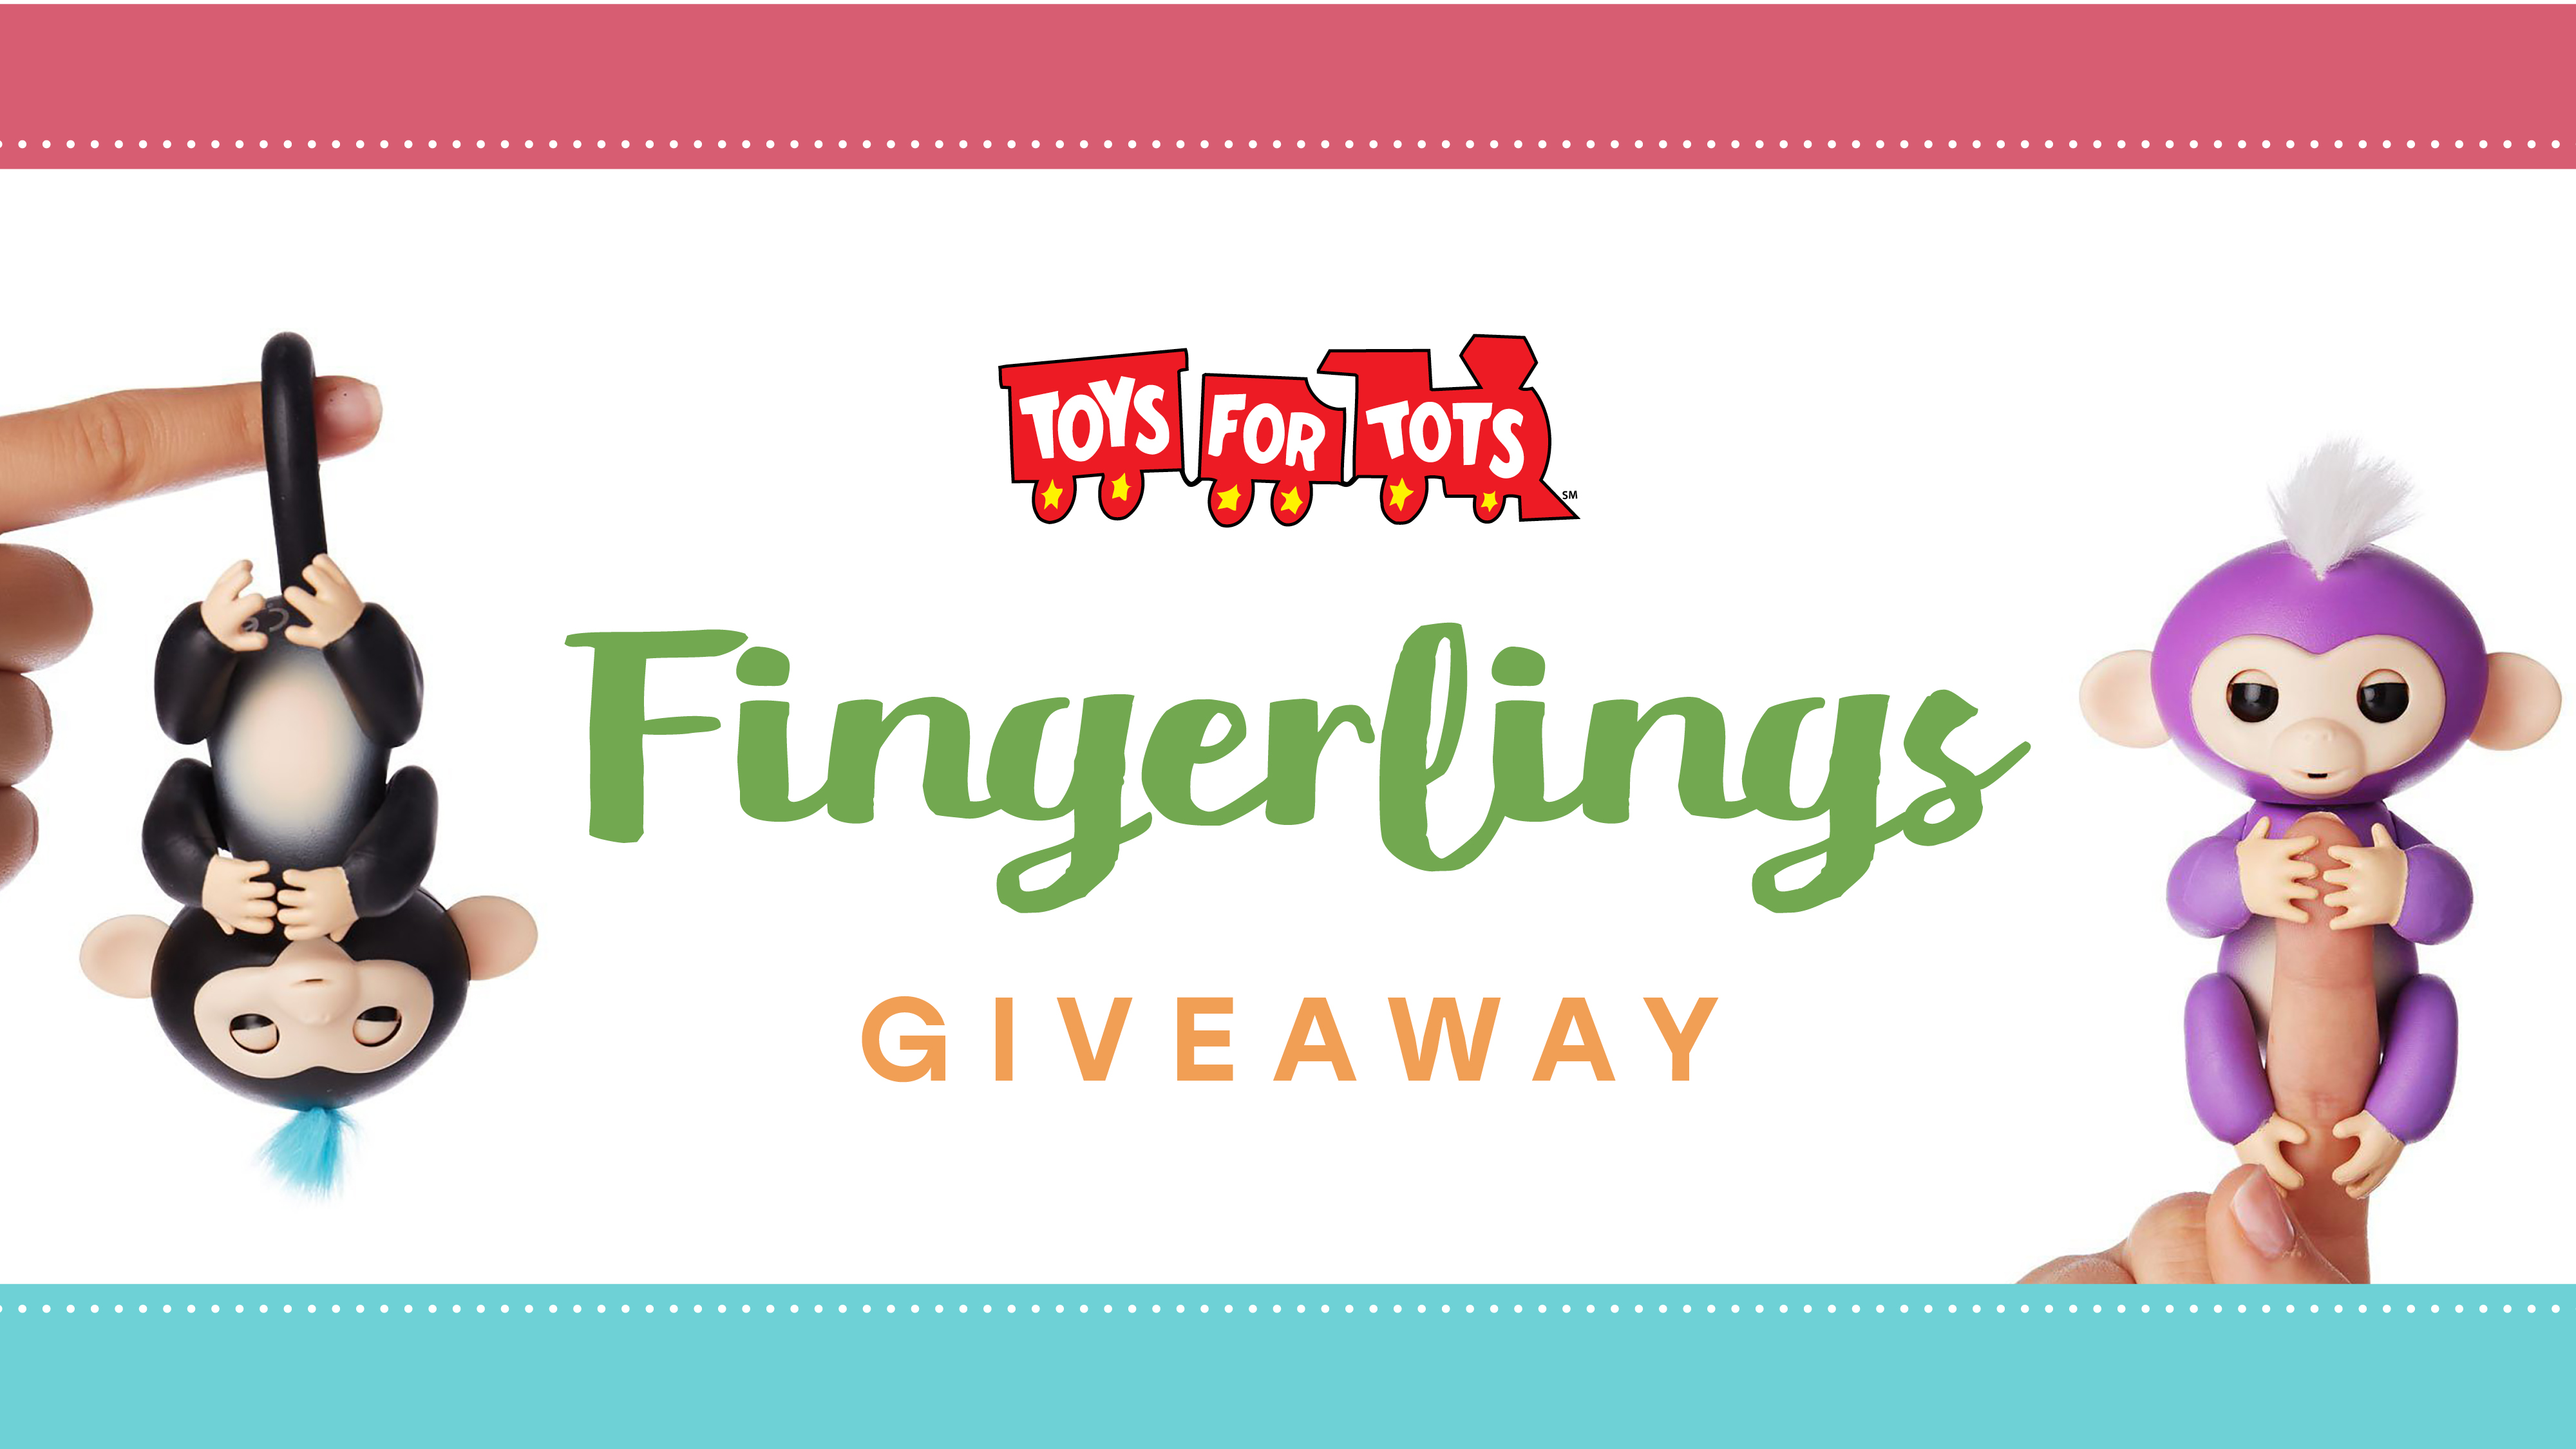 Toys For Tots 2017 Registration : Bring a new unwrapped toy for your chance to win